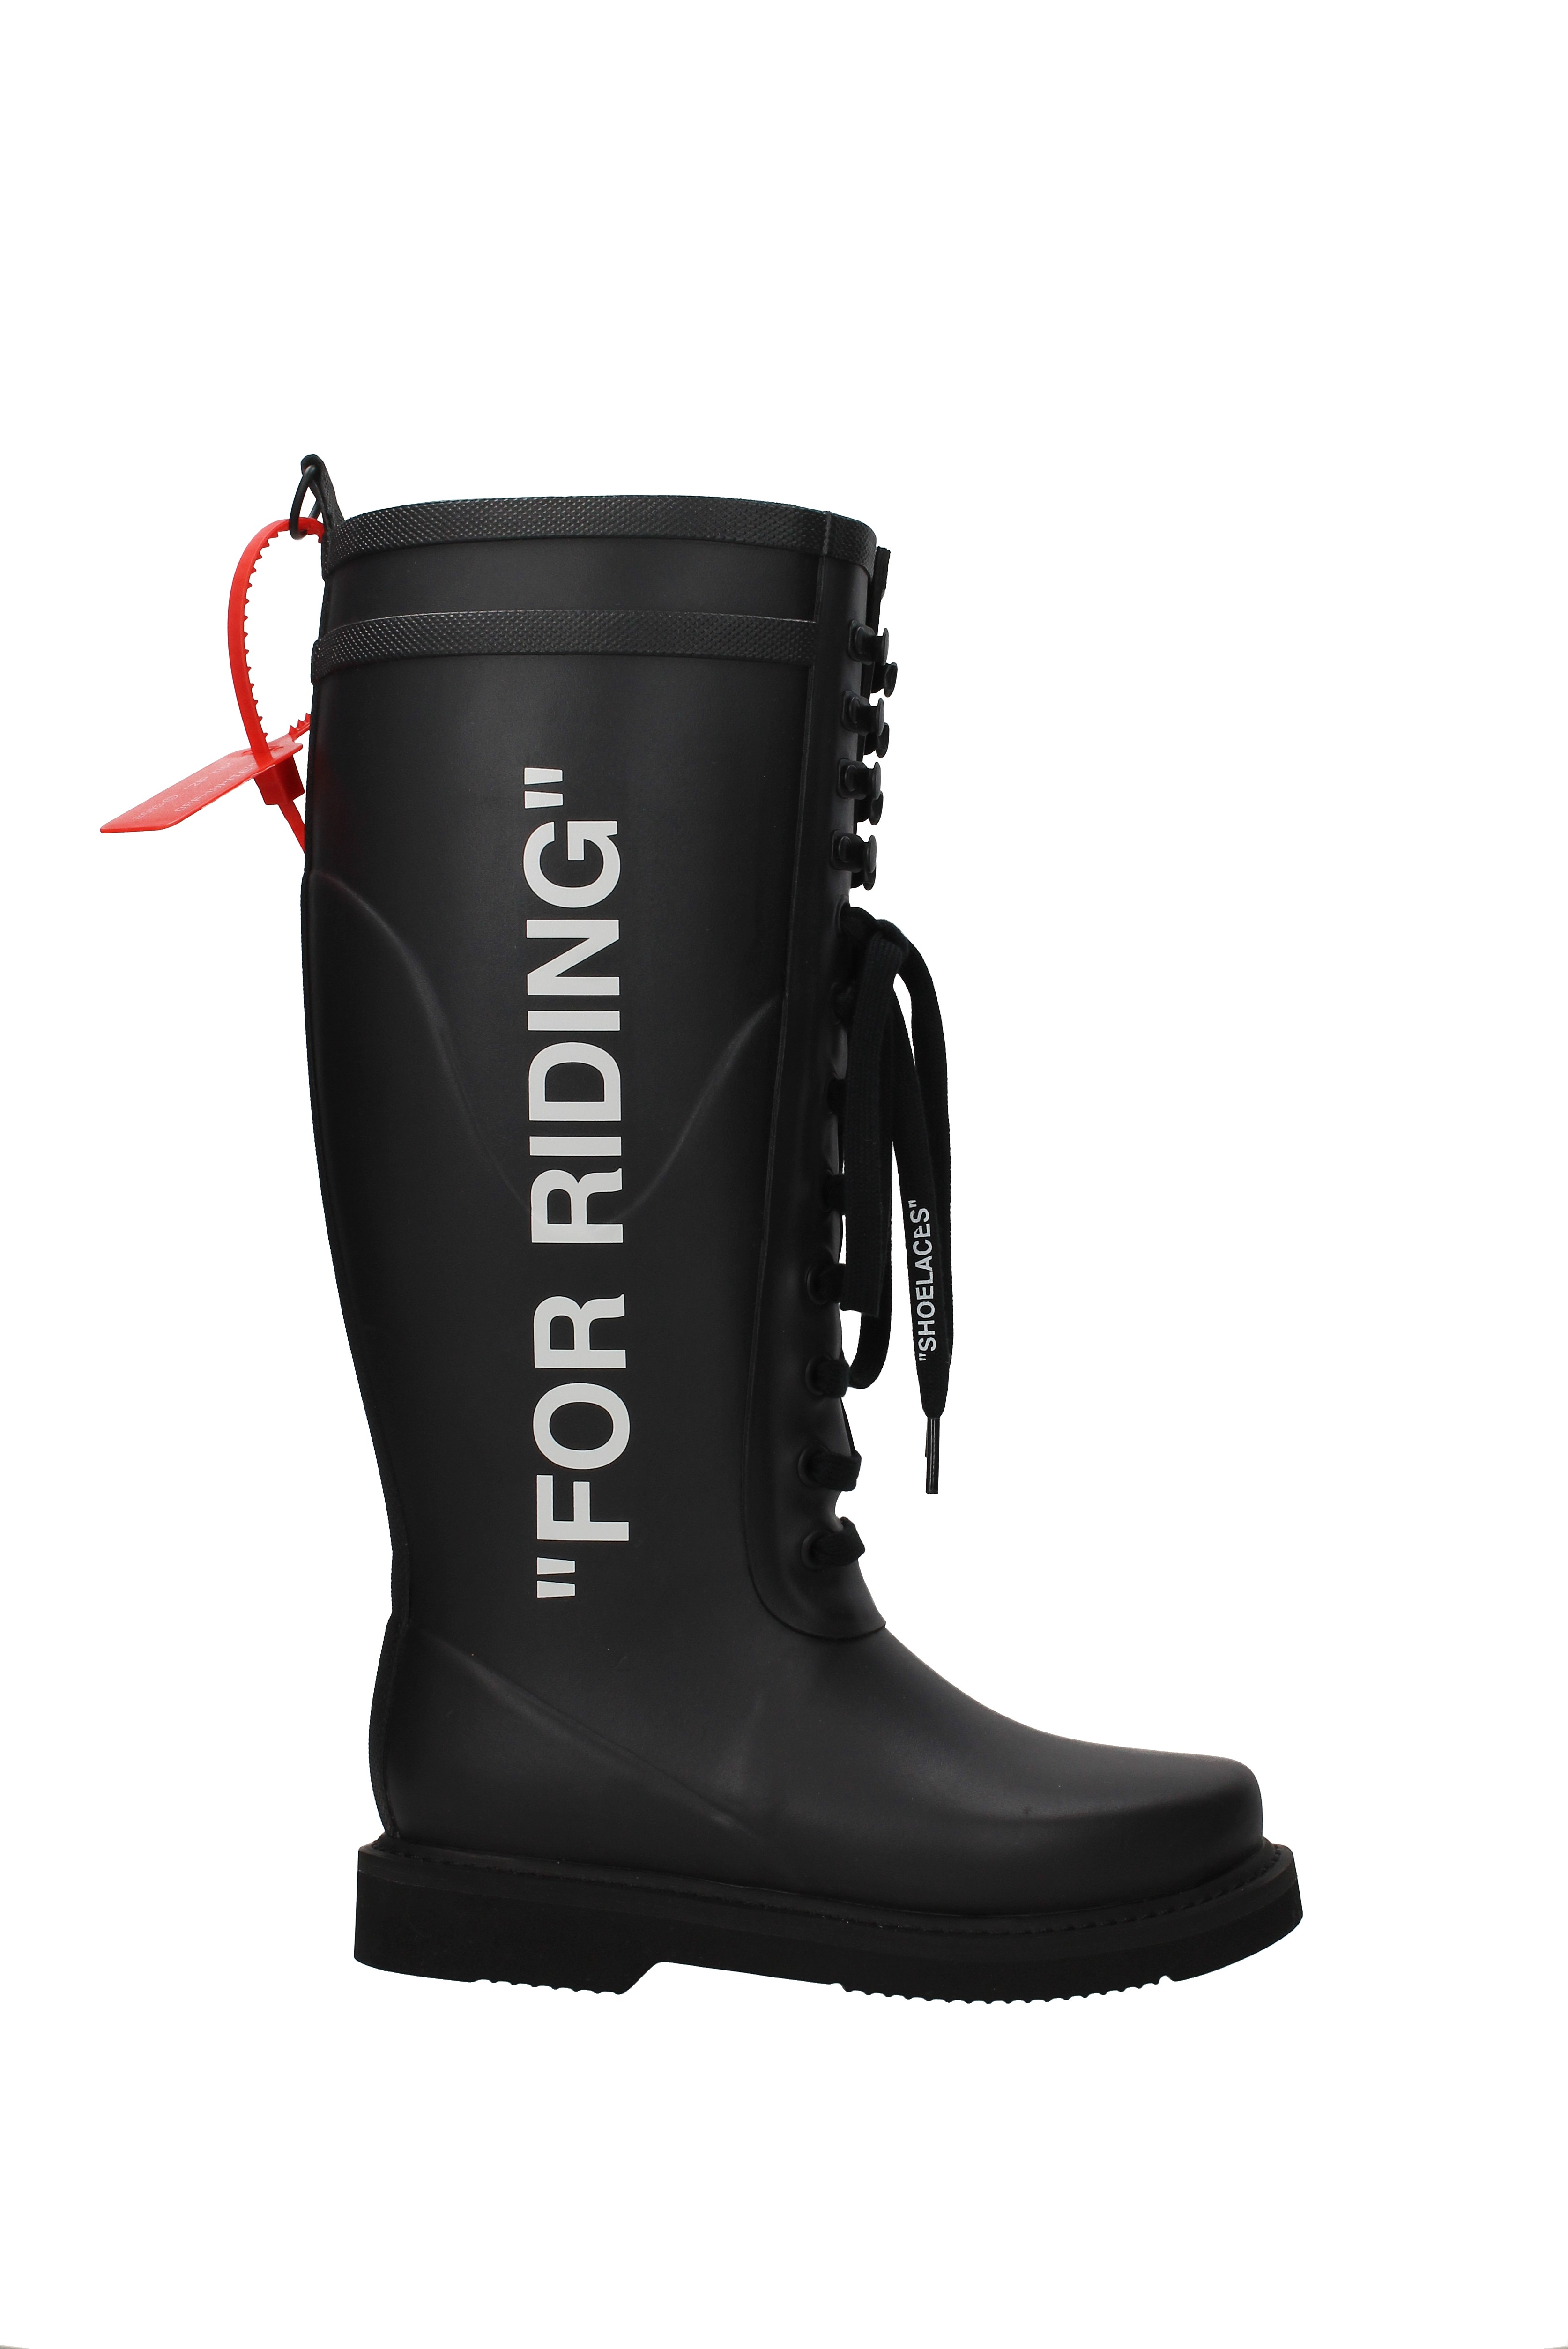 Donna Riding Stivali Off white Welly owia133f18b82085 Gomma For wqFfvCcH